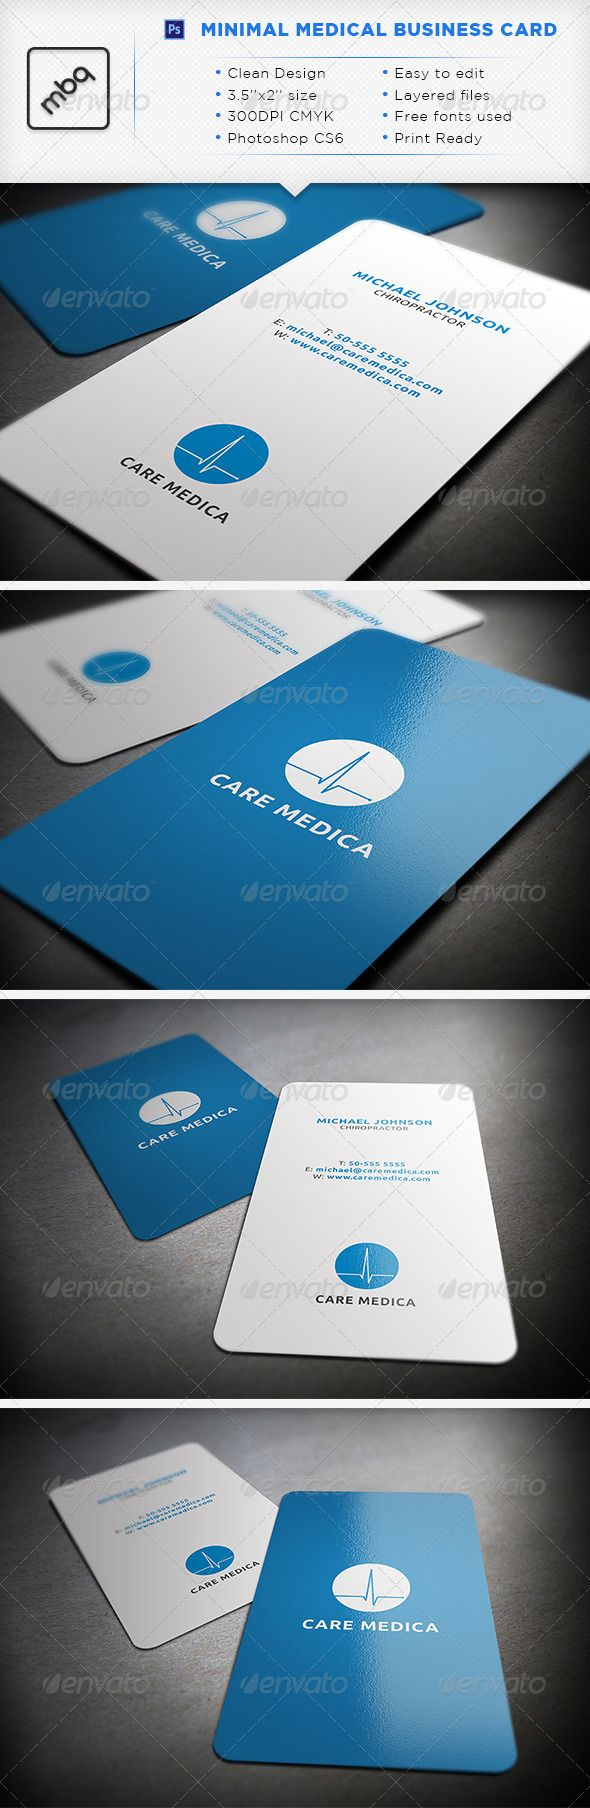 51 best medical doctor business card images on pinterest business minimal medical business card graphicriver fbccfo Choice Image